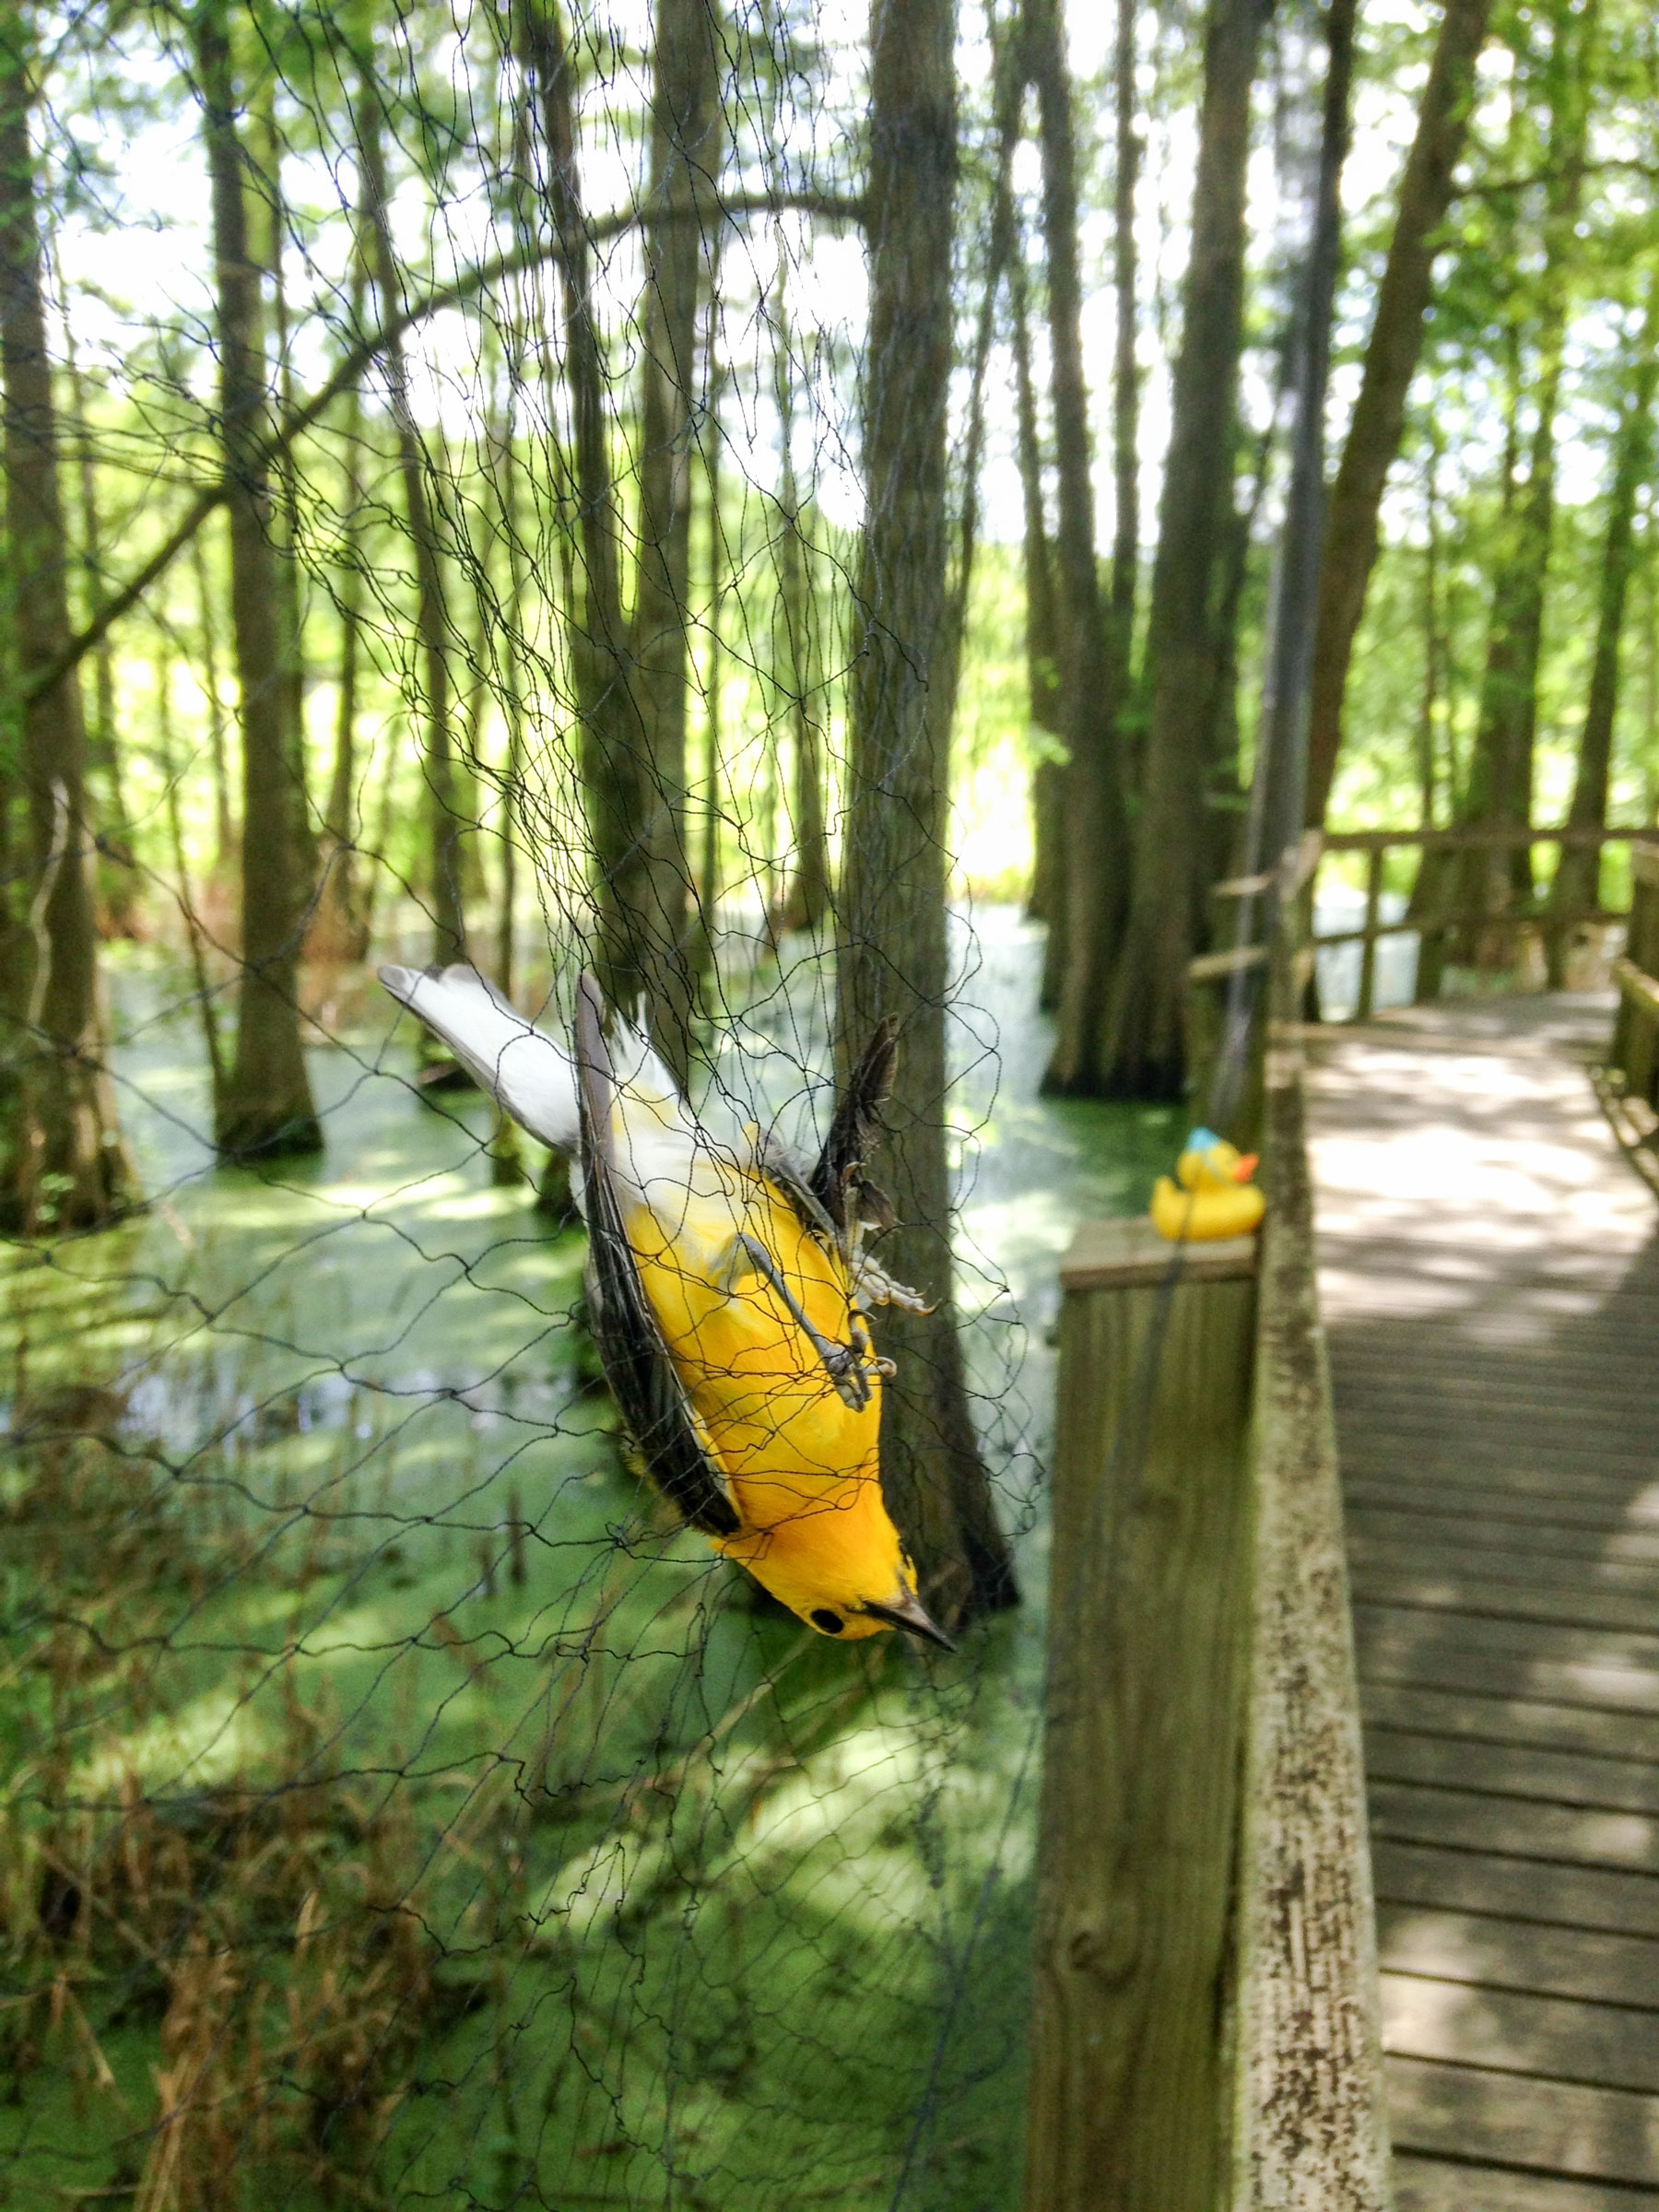 A rubber duck is used to lure a Prothonotary Warbler into a catch net. Katie Percy/Audubon Delta